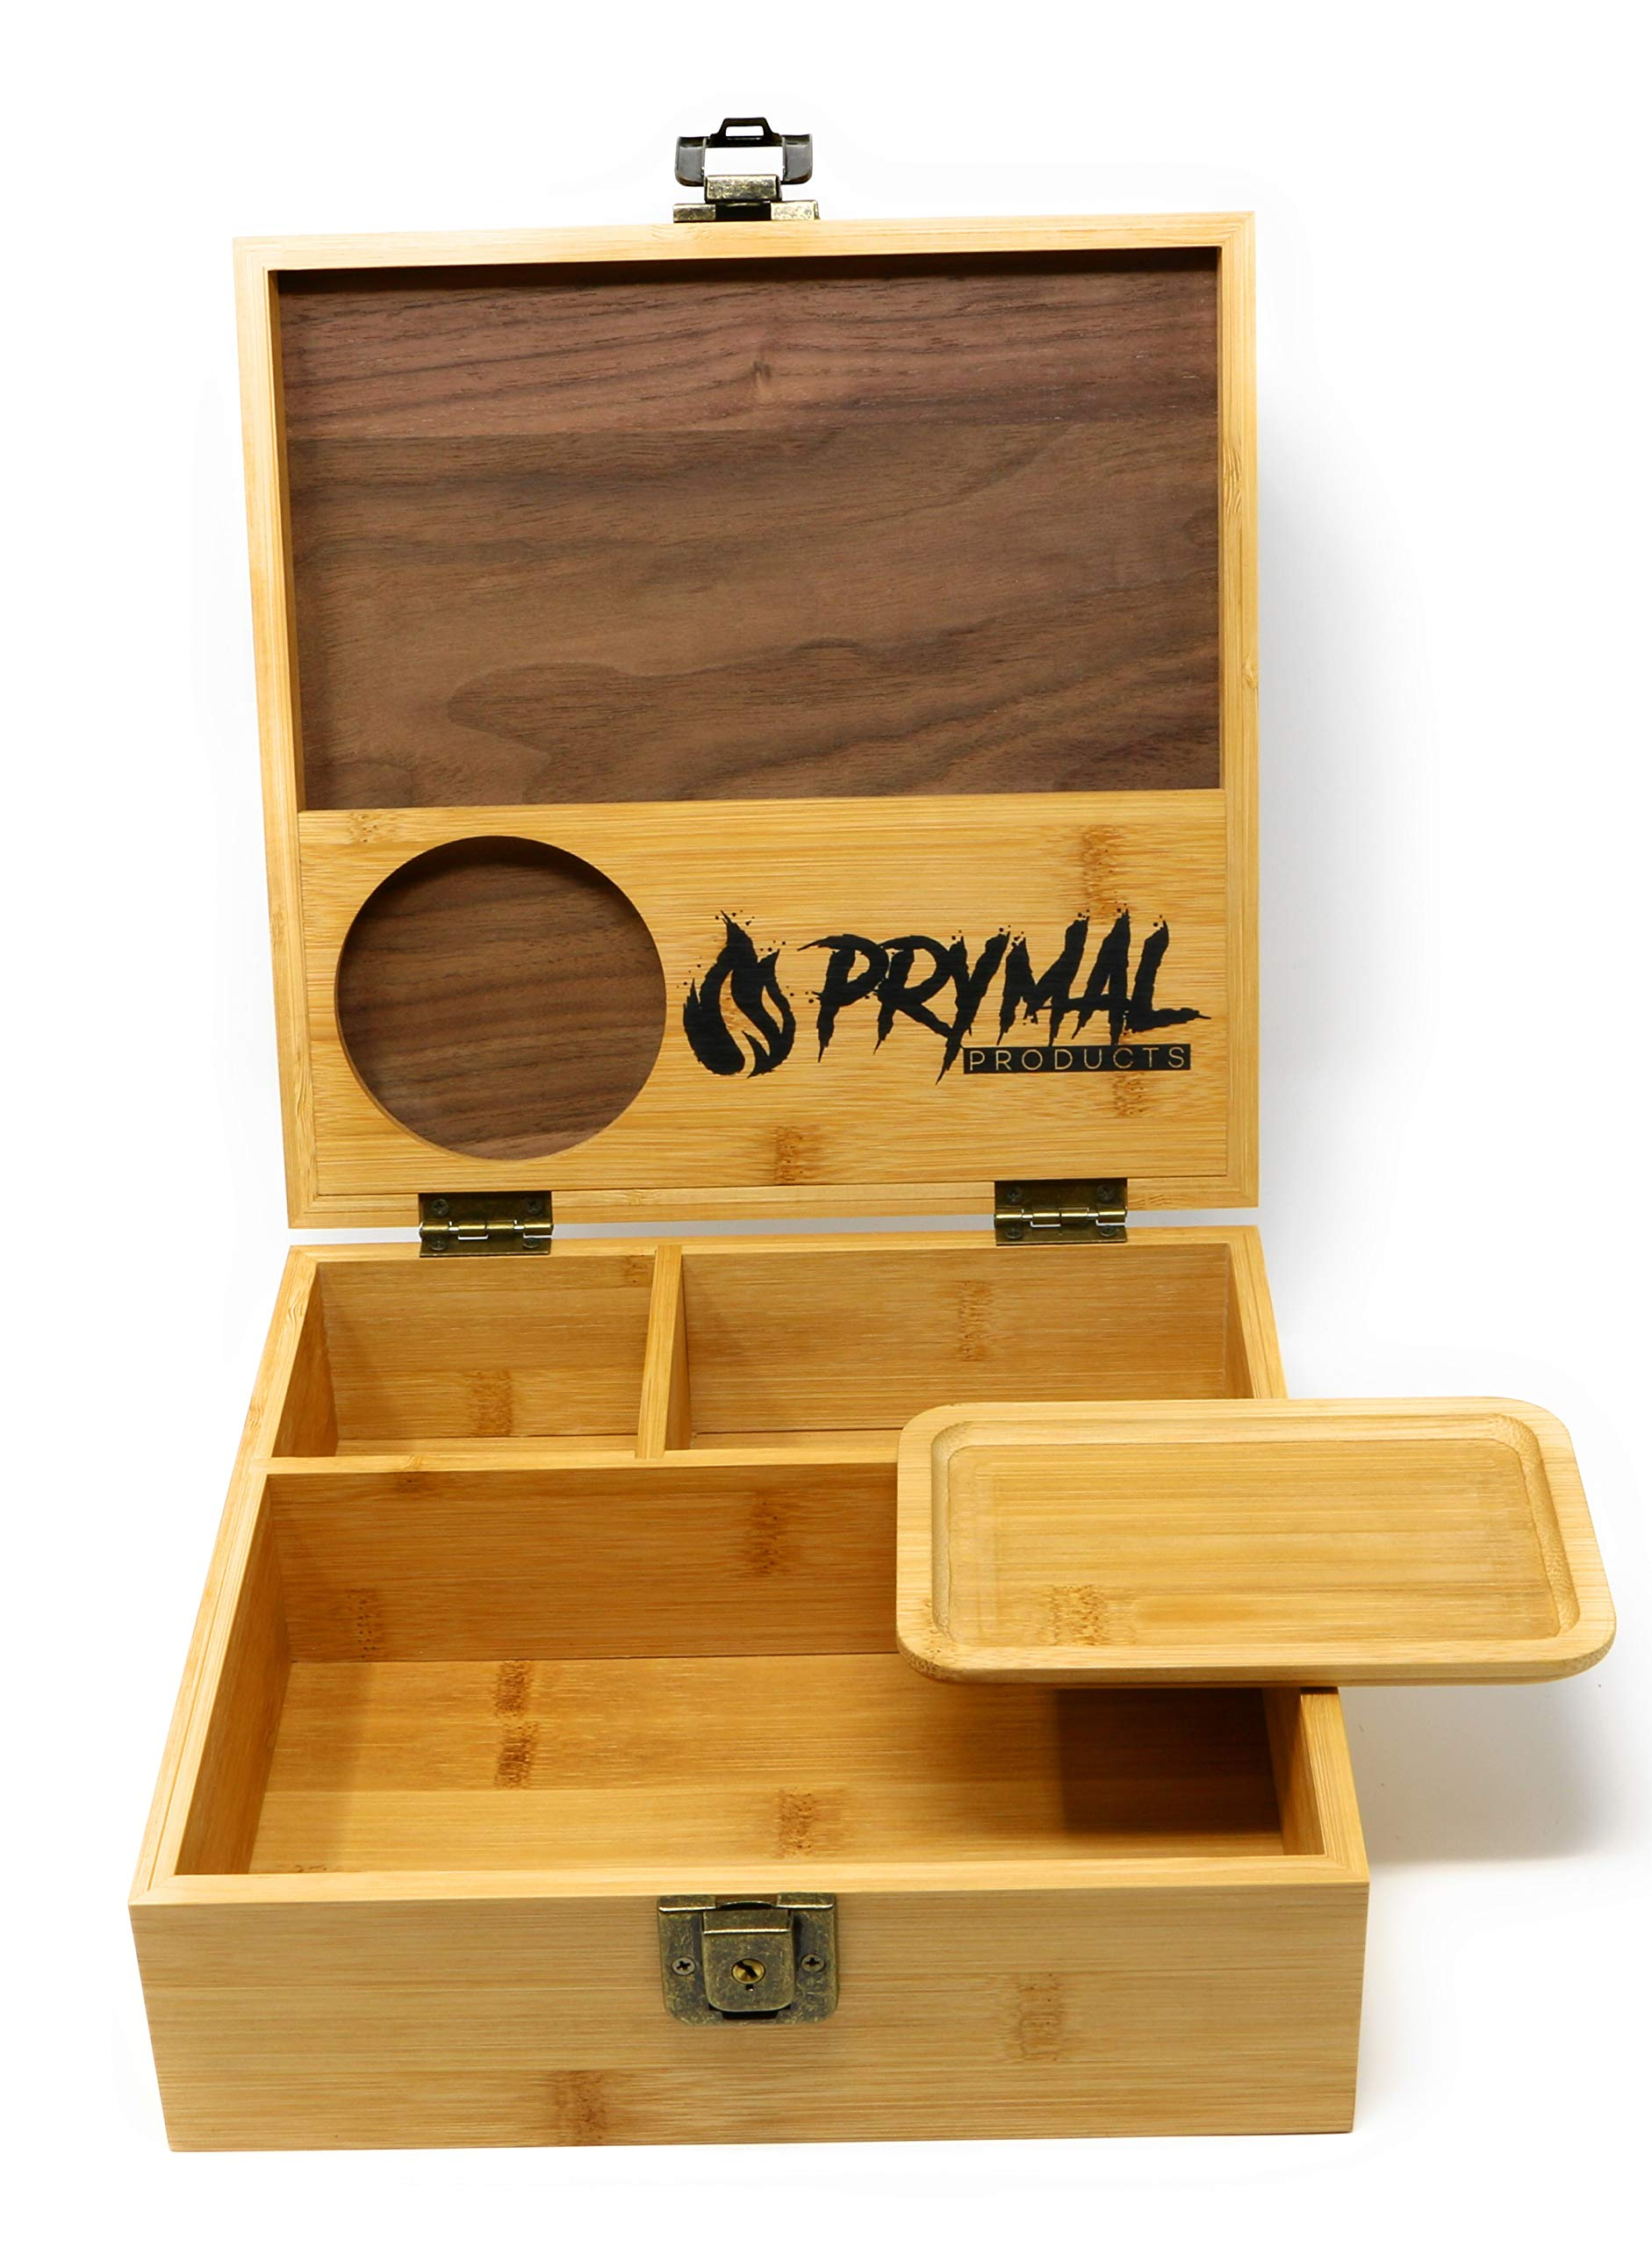 Prymal Products Extra Large Stash Box with Rolling Tray - Premium Black Walnut and Bamboo Wood - Organize Your Accessories